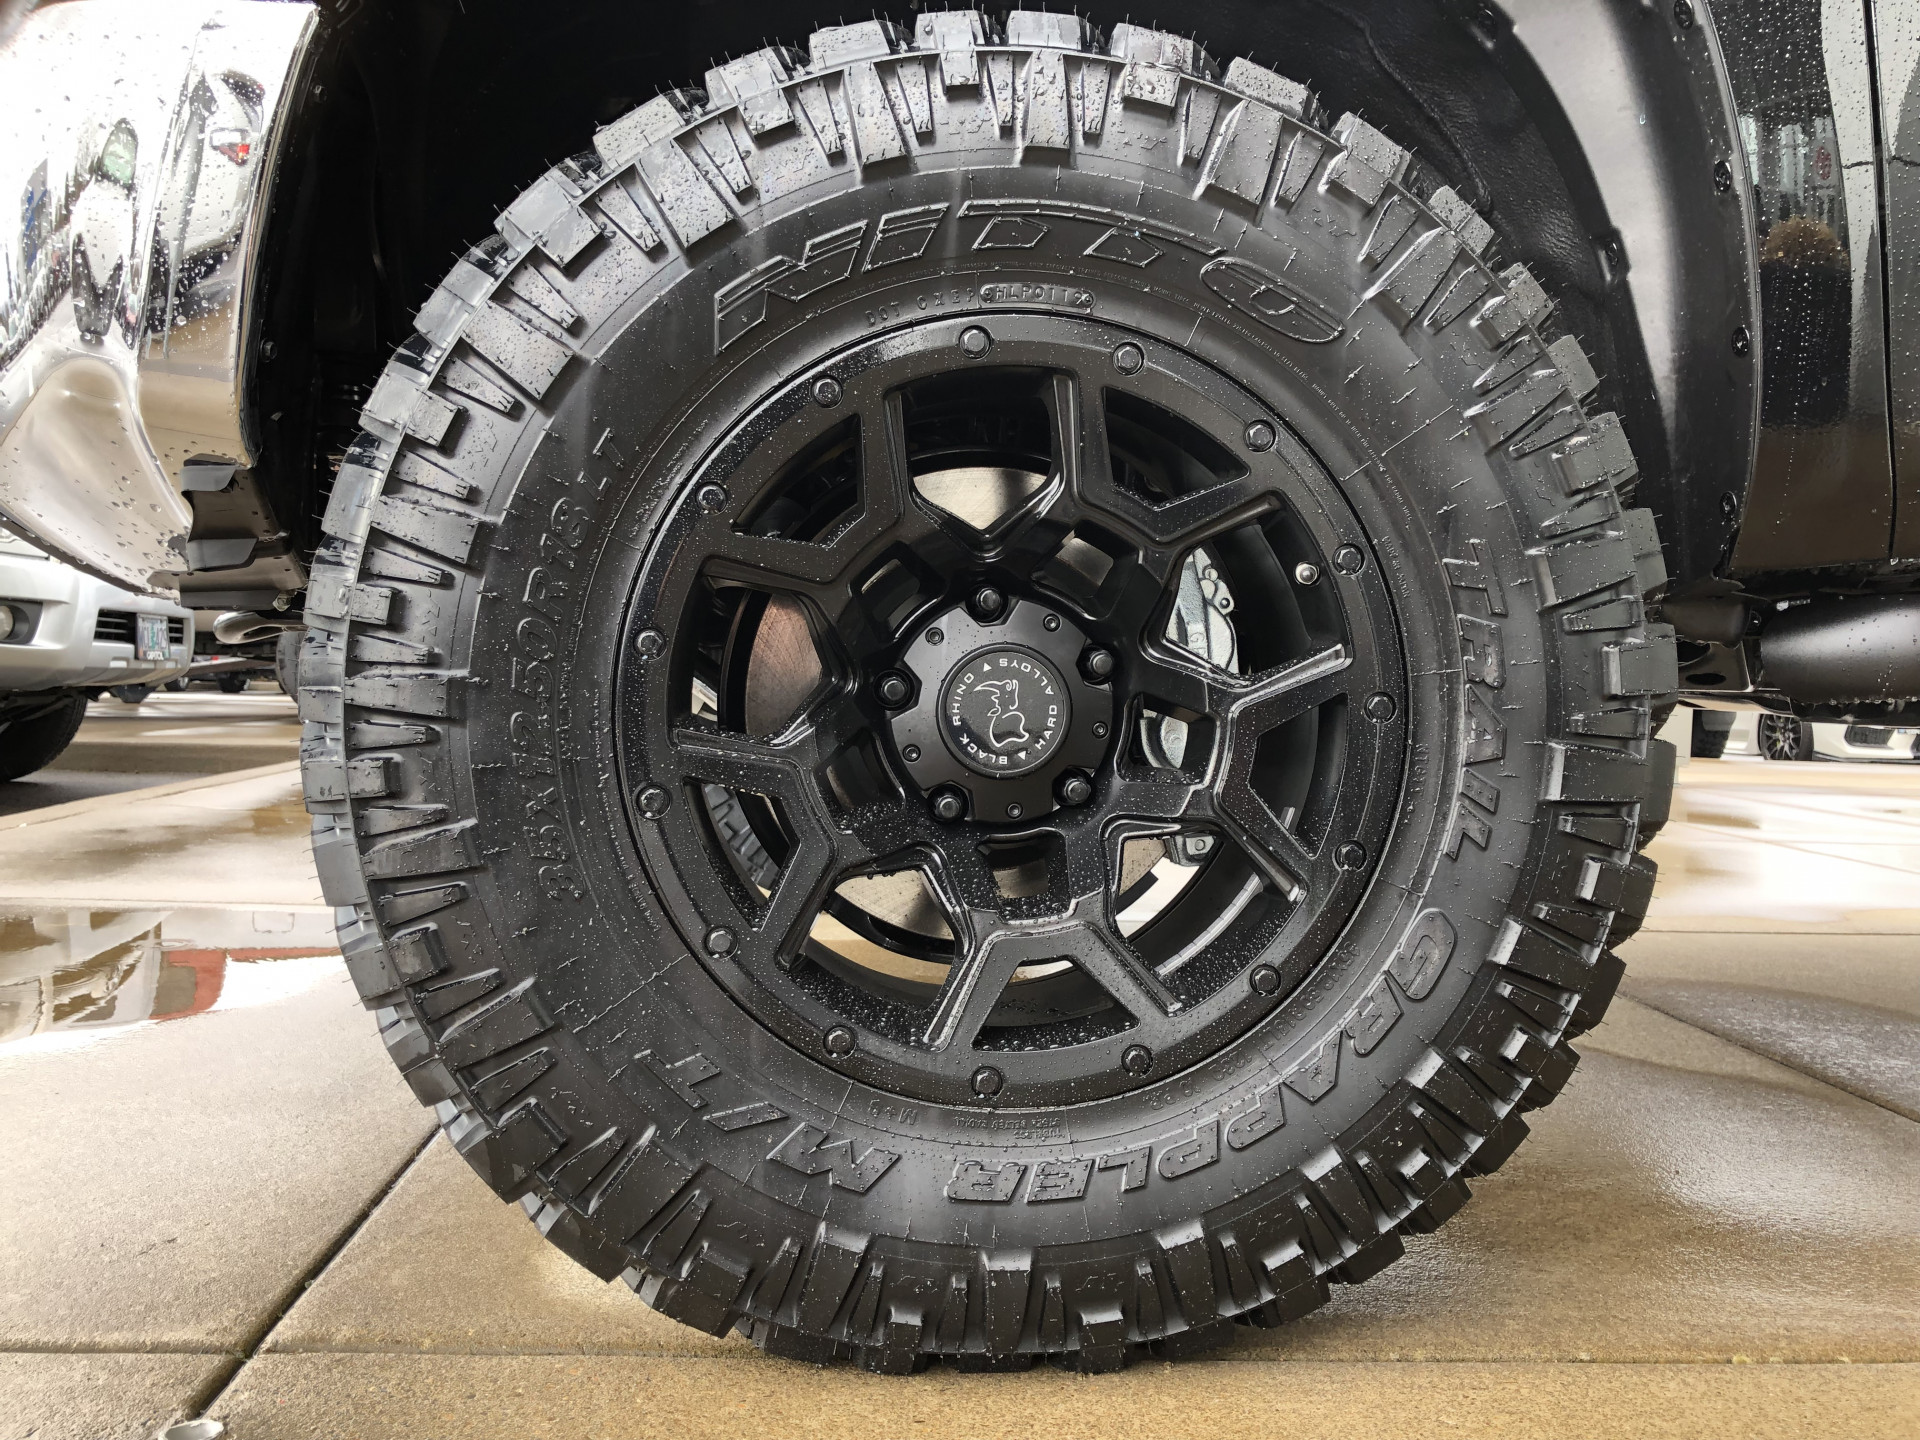 Toyota Tundra 18 inch Black Rhino Overland wheels mounted on 35x12.5x18 Nitto Trail Grappler tires